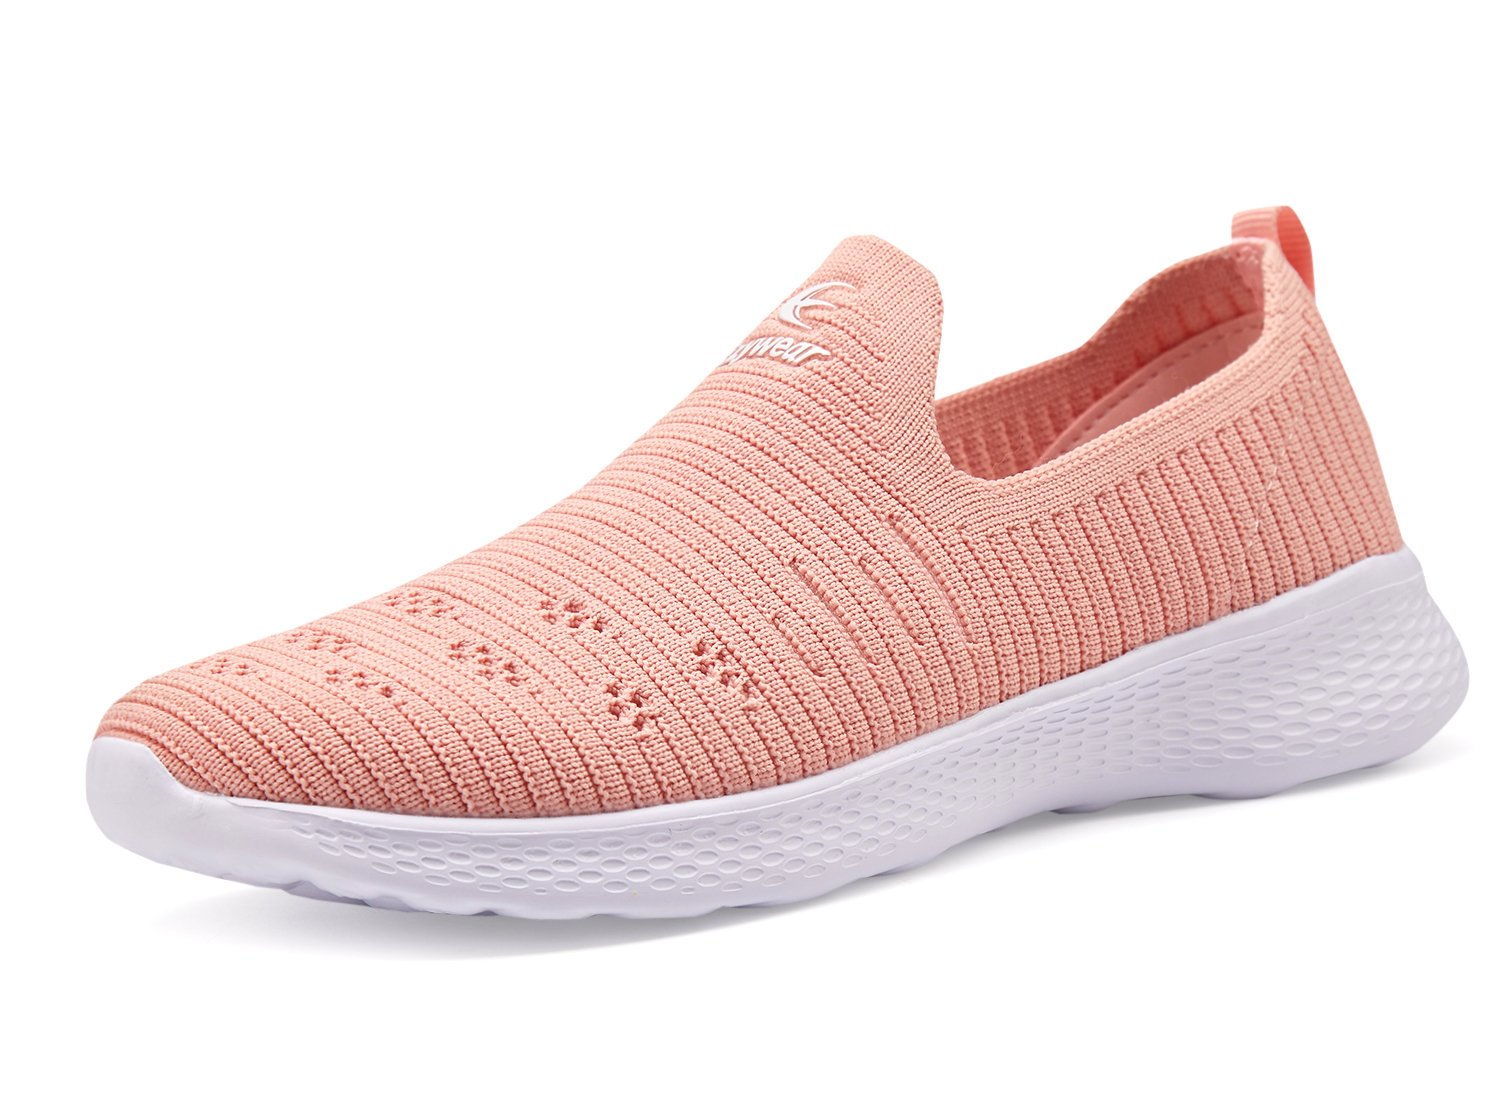 Women's Slip On Shoes Casual Mesh Walking Sneakers Comfortable Shoes(9, 834 Pink) by Leader shoes